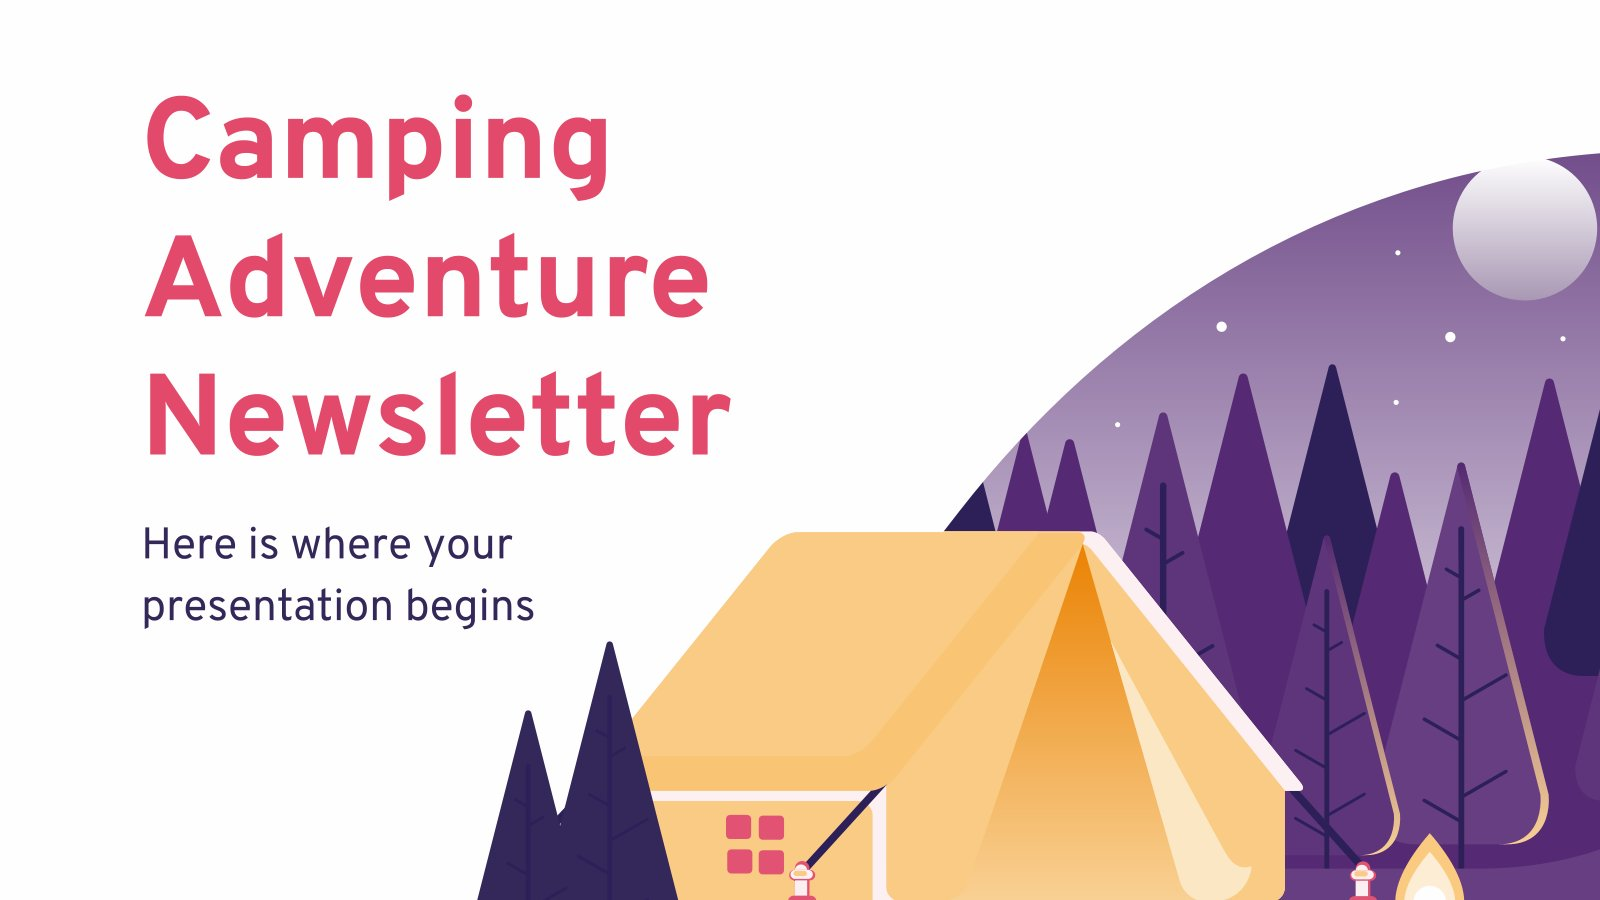 Camping Adventure Newsletter presentation template